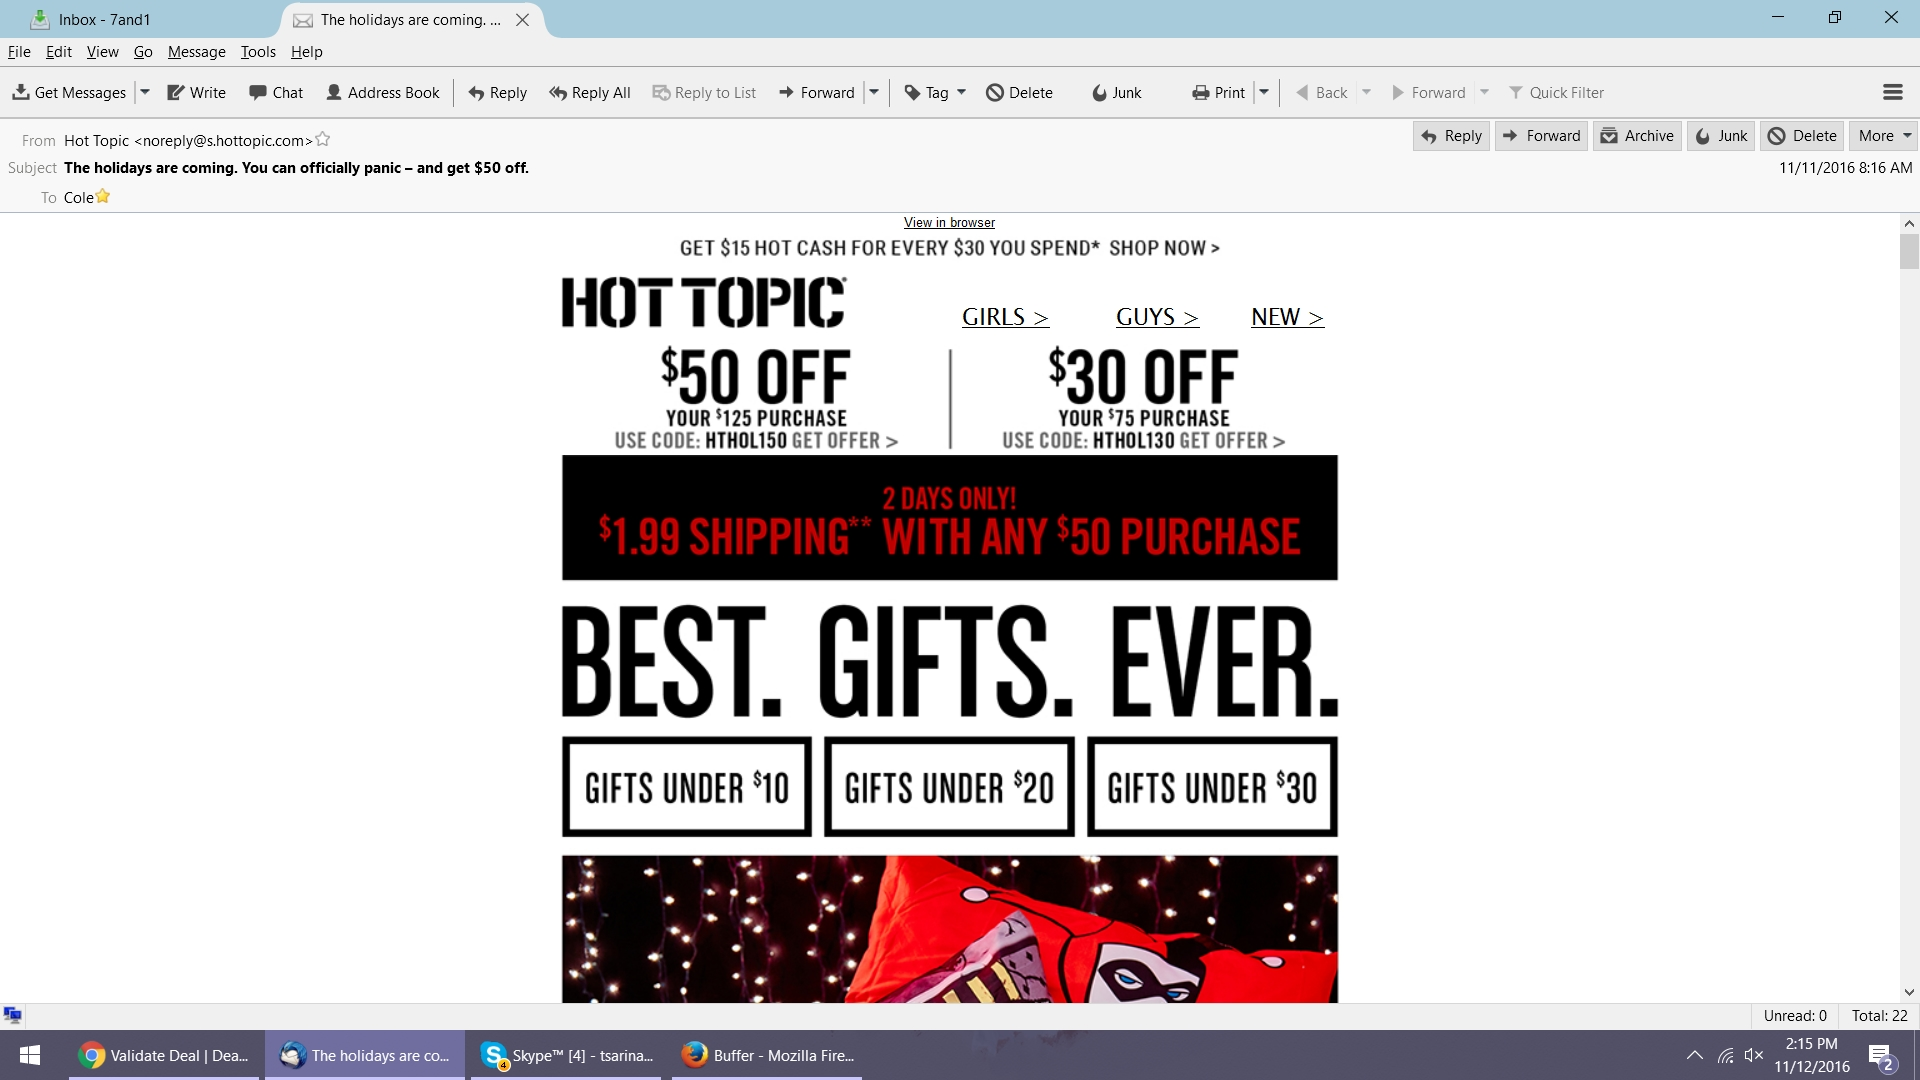 Nov 27,  · Hot Topic is a clothing and accessories retail chain with a passion for music and pop culture inspired fashion. Hot Topic offers licensed merchandise and band-related apparel and products for guys and girls with t-shirts, tanks, jeans, dresses, shoes, jewelry, backpacks and much more.